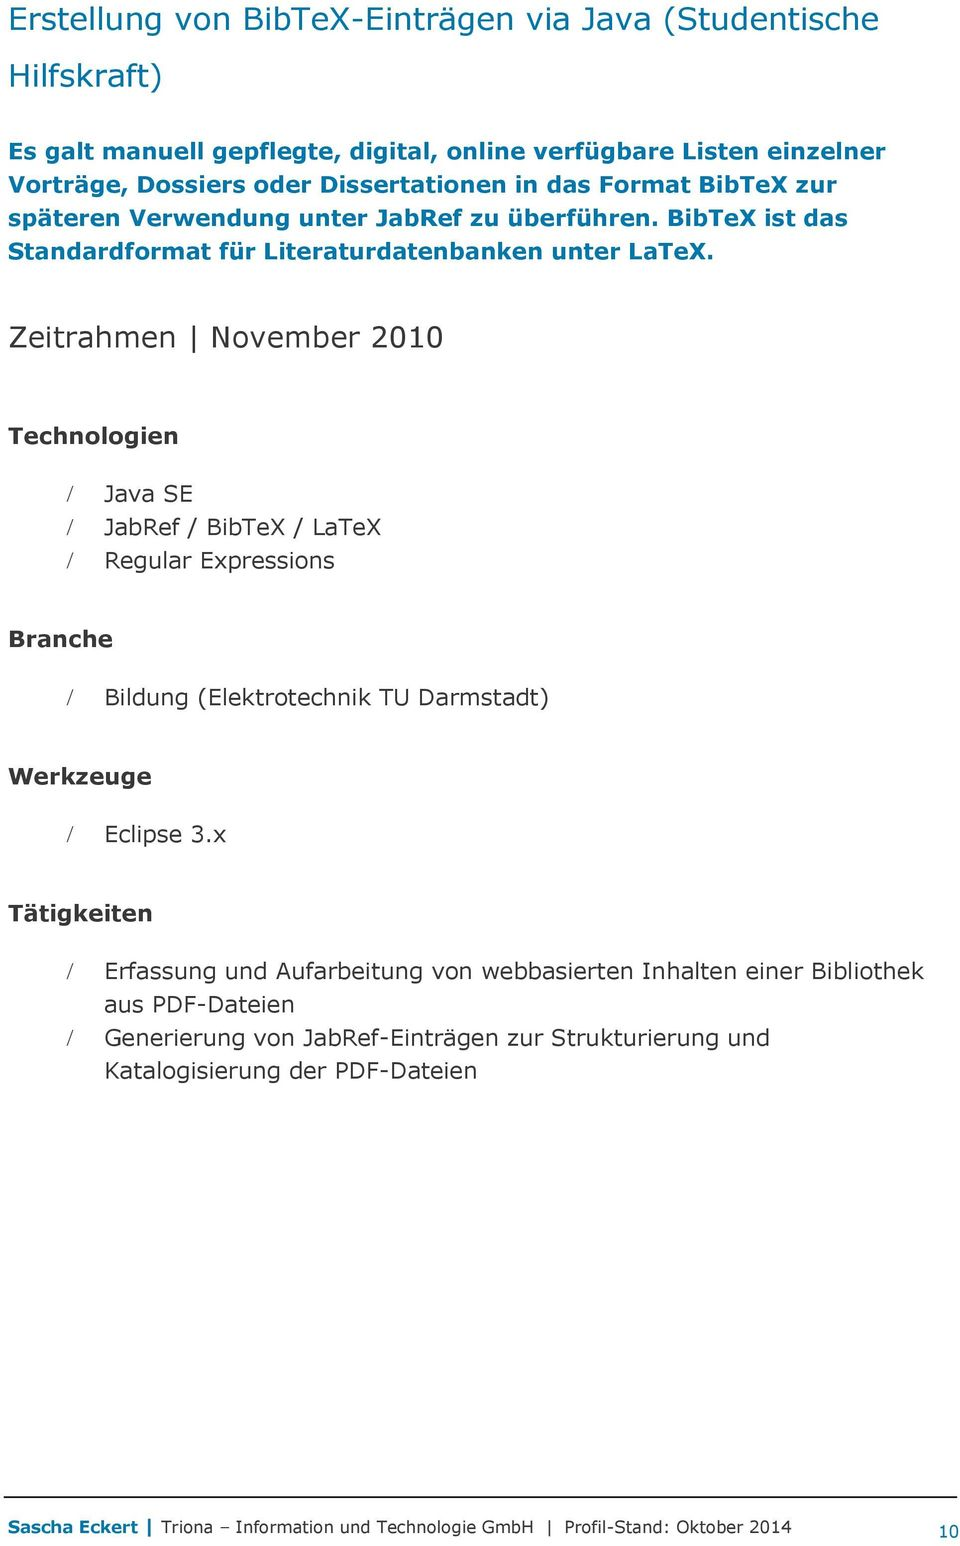 Zeitrahmen November 2010 Technologien Java SE JabRef / BibTeX / LaTeX Regular Expressions Bildung (Elektrotechnik TU Darmstadt) Eclipse 3.